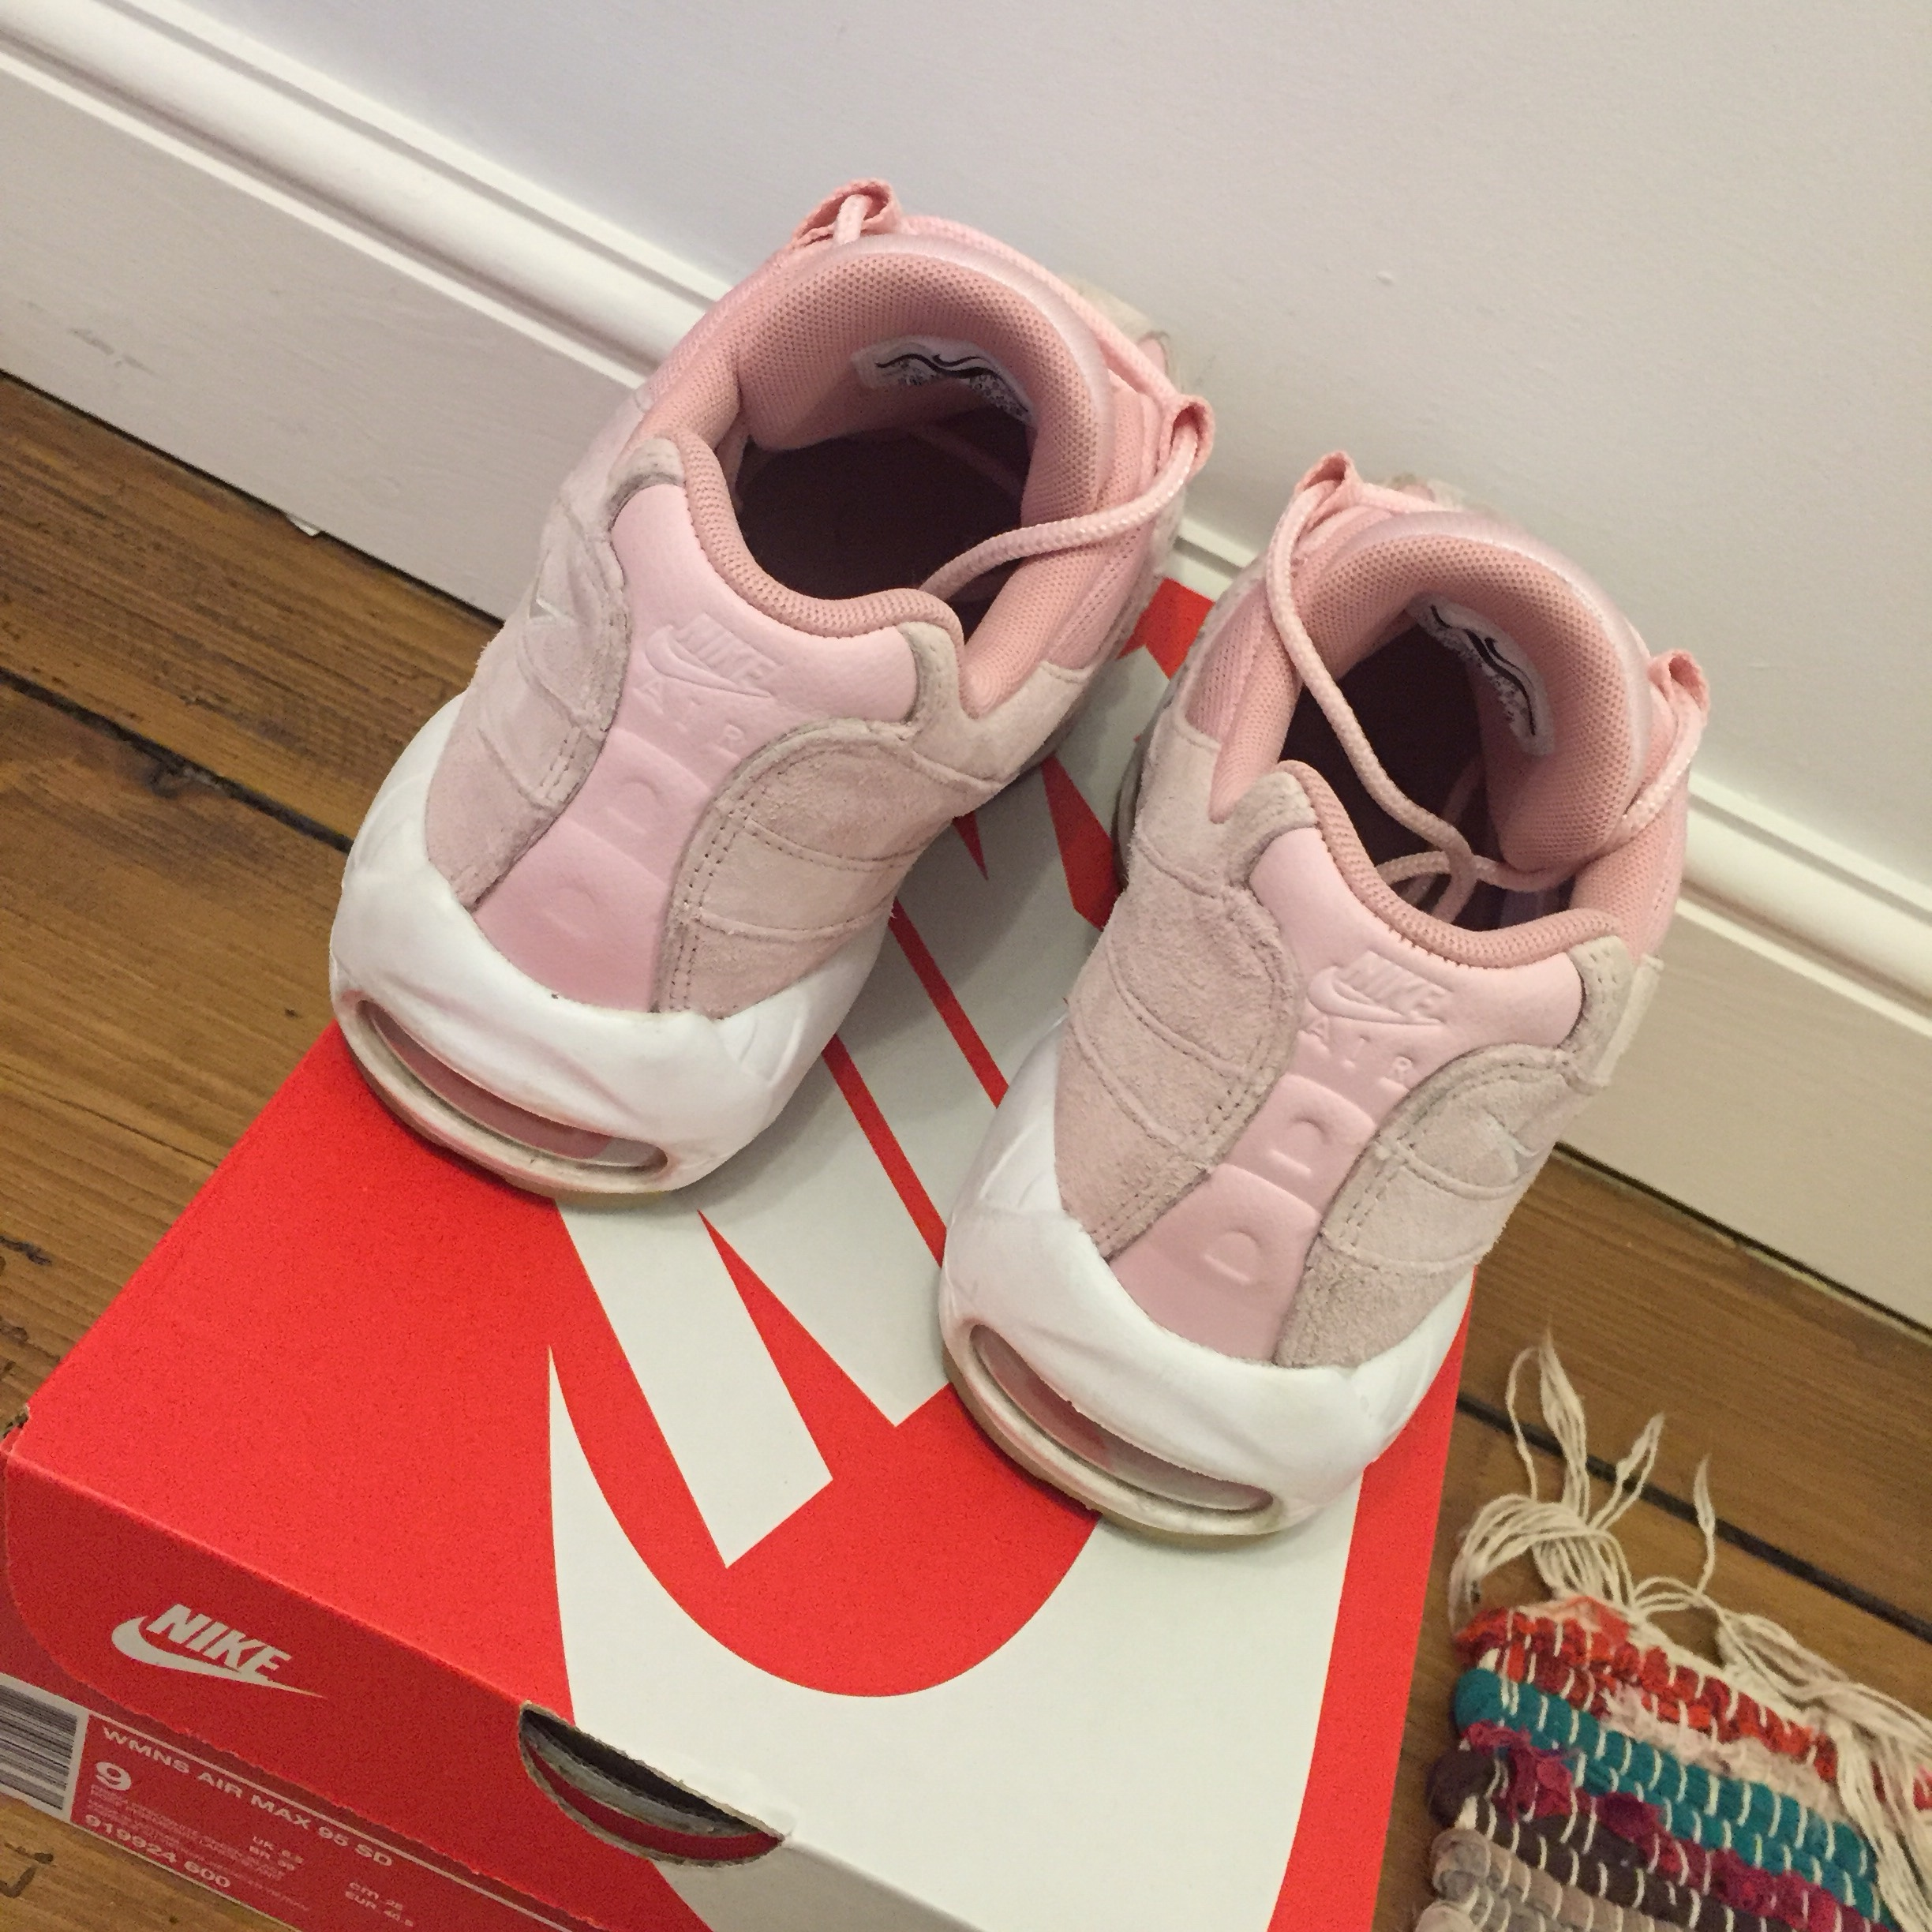 Nike Air Max 95 Prism Pink white sheen, suede Size Depop